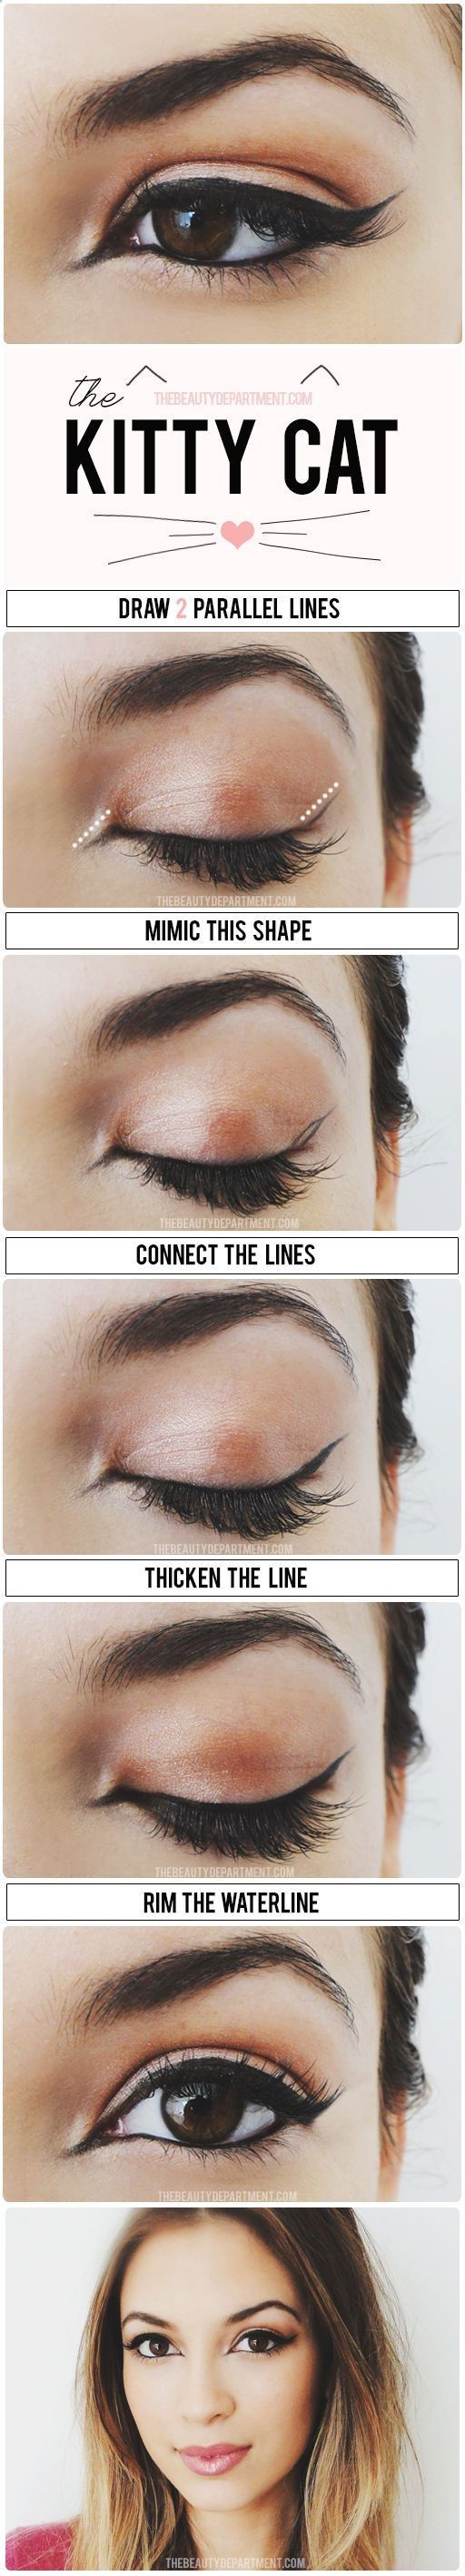 Cat eyes //  In need of a detox? 10% off using our discount code 'Pin10' at www.ThinTea.com.au